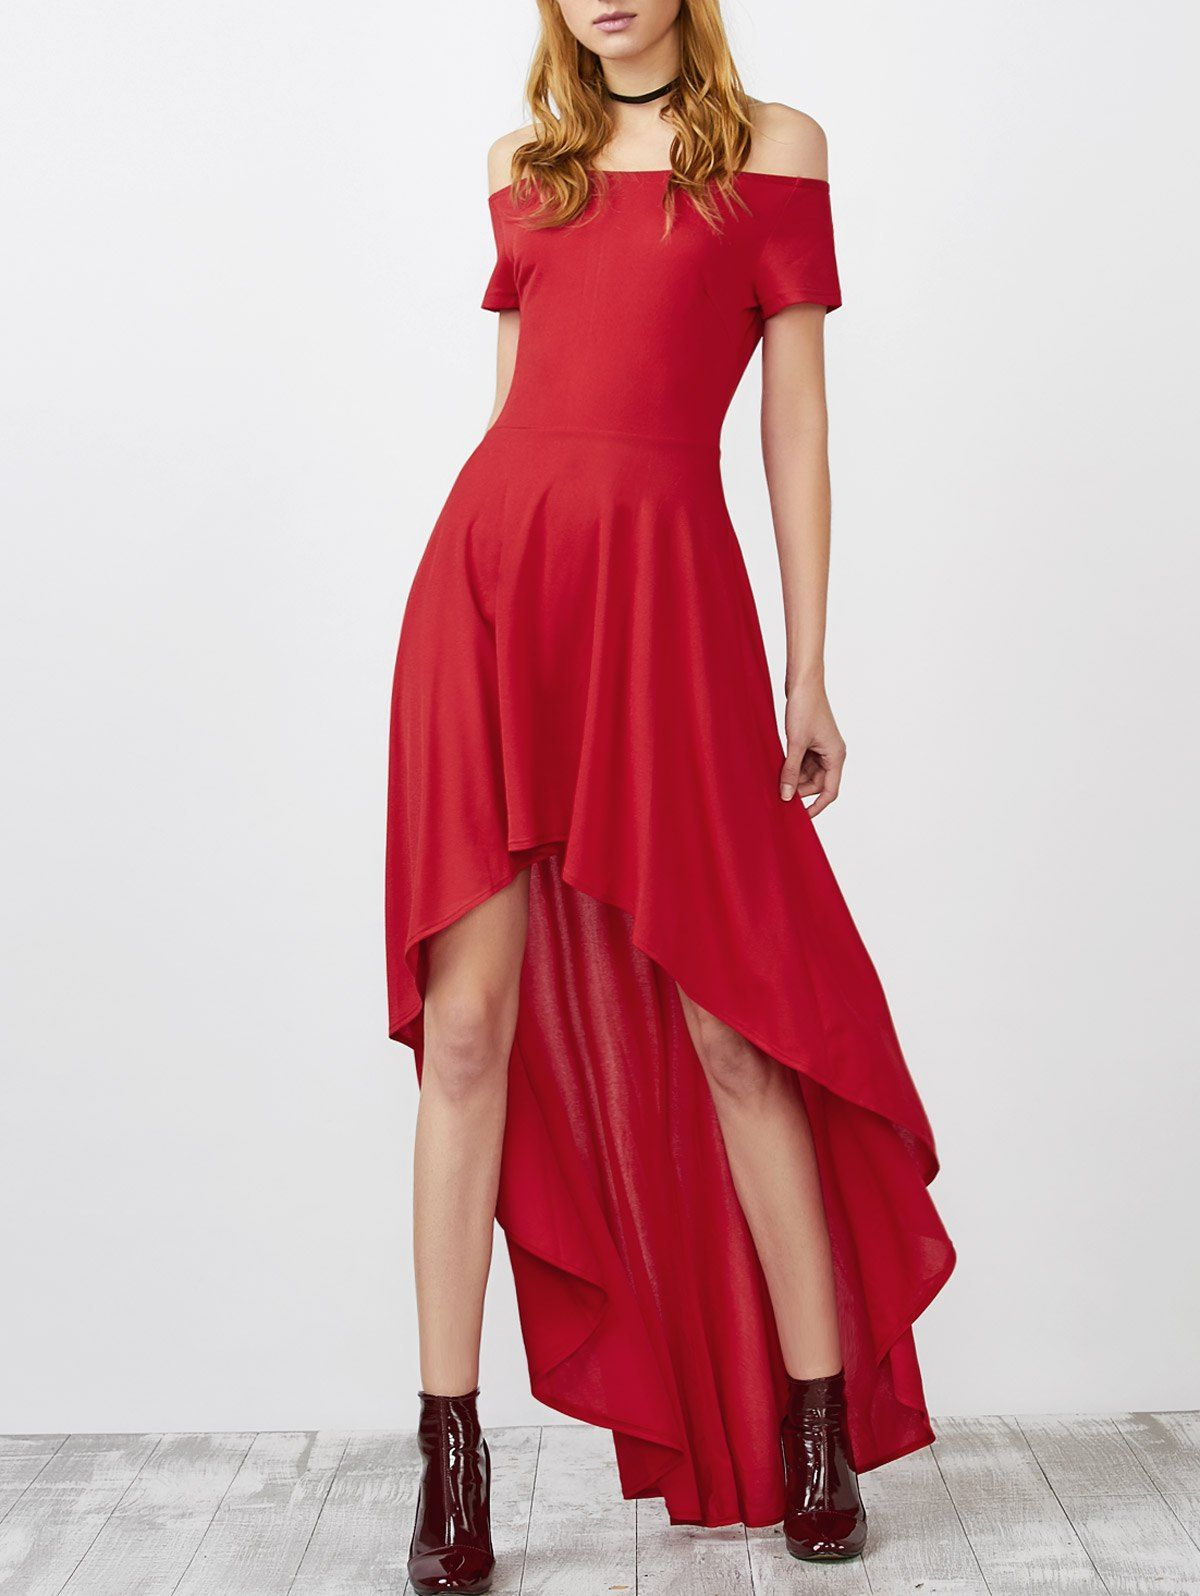 Off shoulder high low prom formal party dress red l bridesmaid